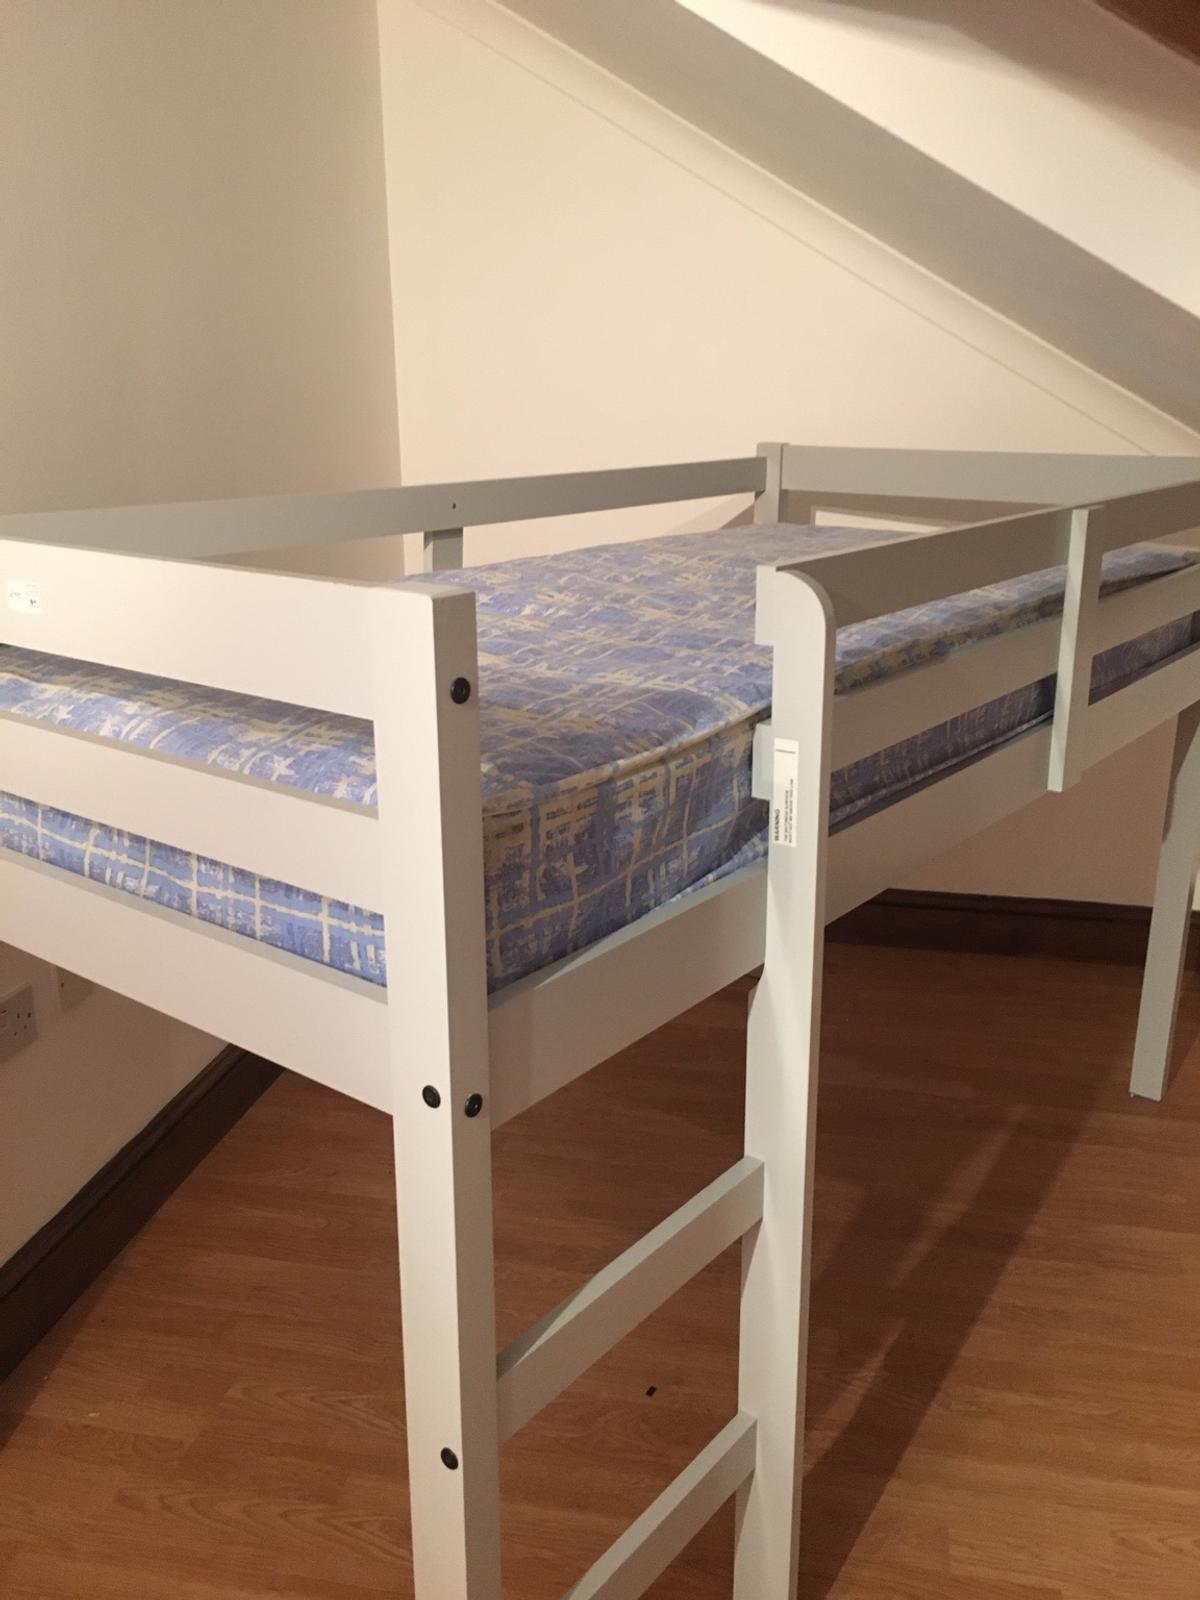 Brand new Cabin Bed in grey with brand new mattress never slept in!! Bought and doesn't fit room...Not a scratch or mark on the frame and same for the mattress paid £228 had it 1 month all stickers still on the bed also